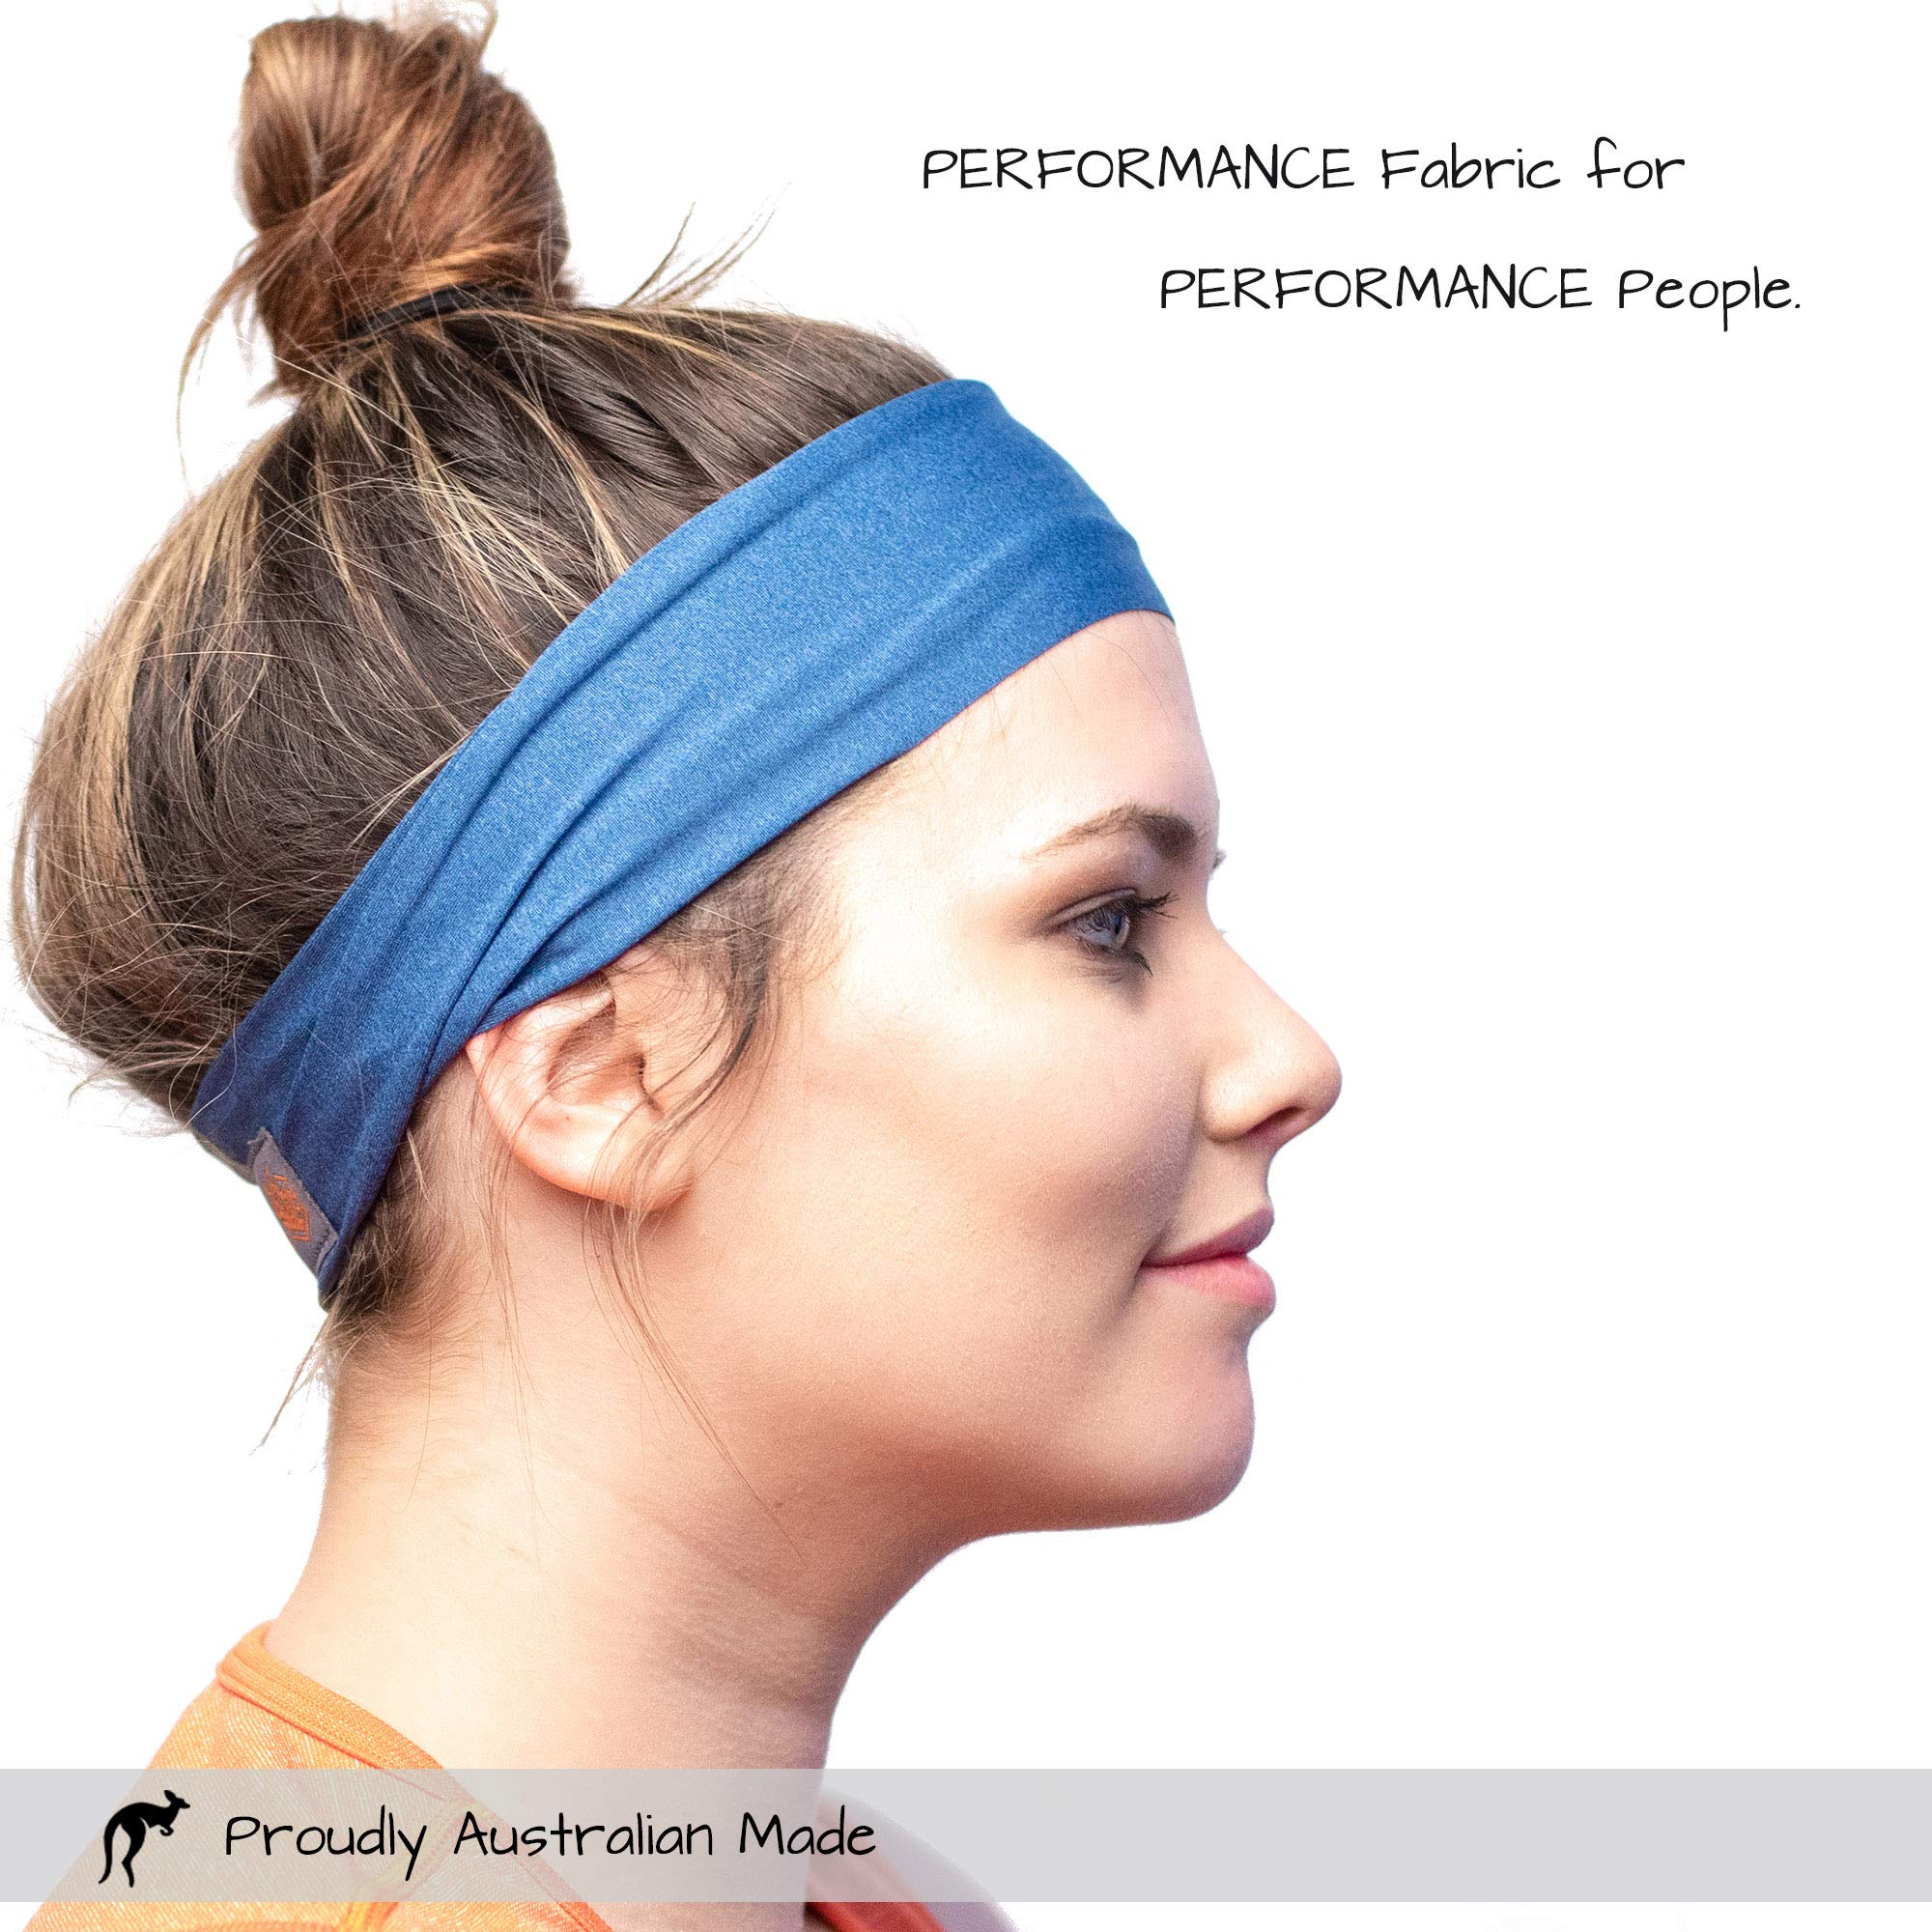 Red Dust Active Workout Headband - Ideal for Sports, Fitness, Running, The Gym & Yoga - Moisture Wicking - Non-Slip - Exercise Sweatband - Designed for Versatility & The Active Women by Red Dust Active (Image #6)